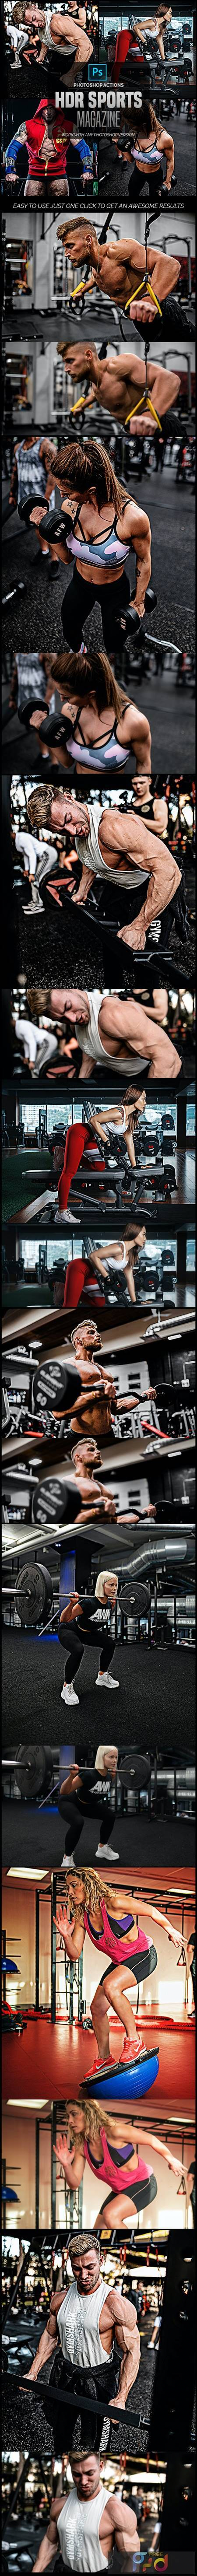 HDR Sports Magazine - Photoshop Actions 26577349 1